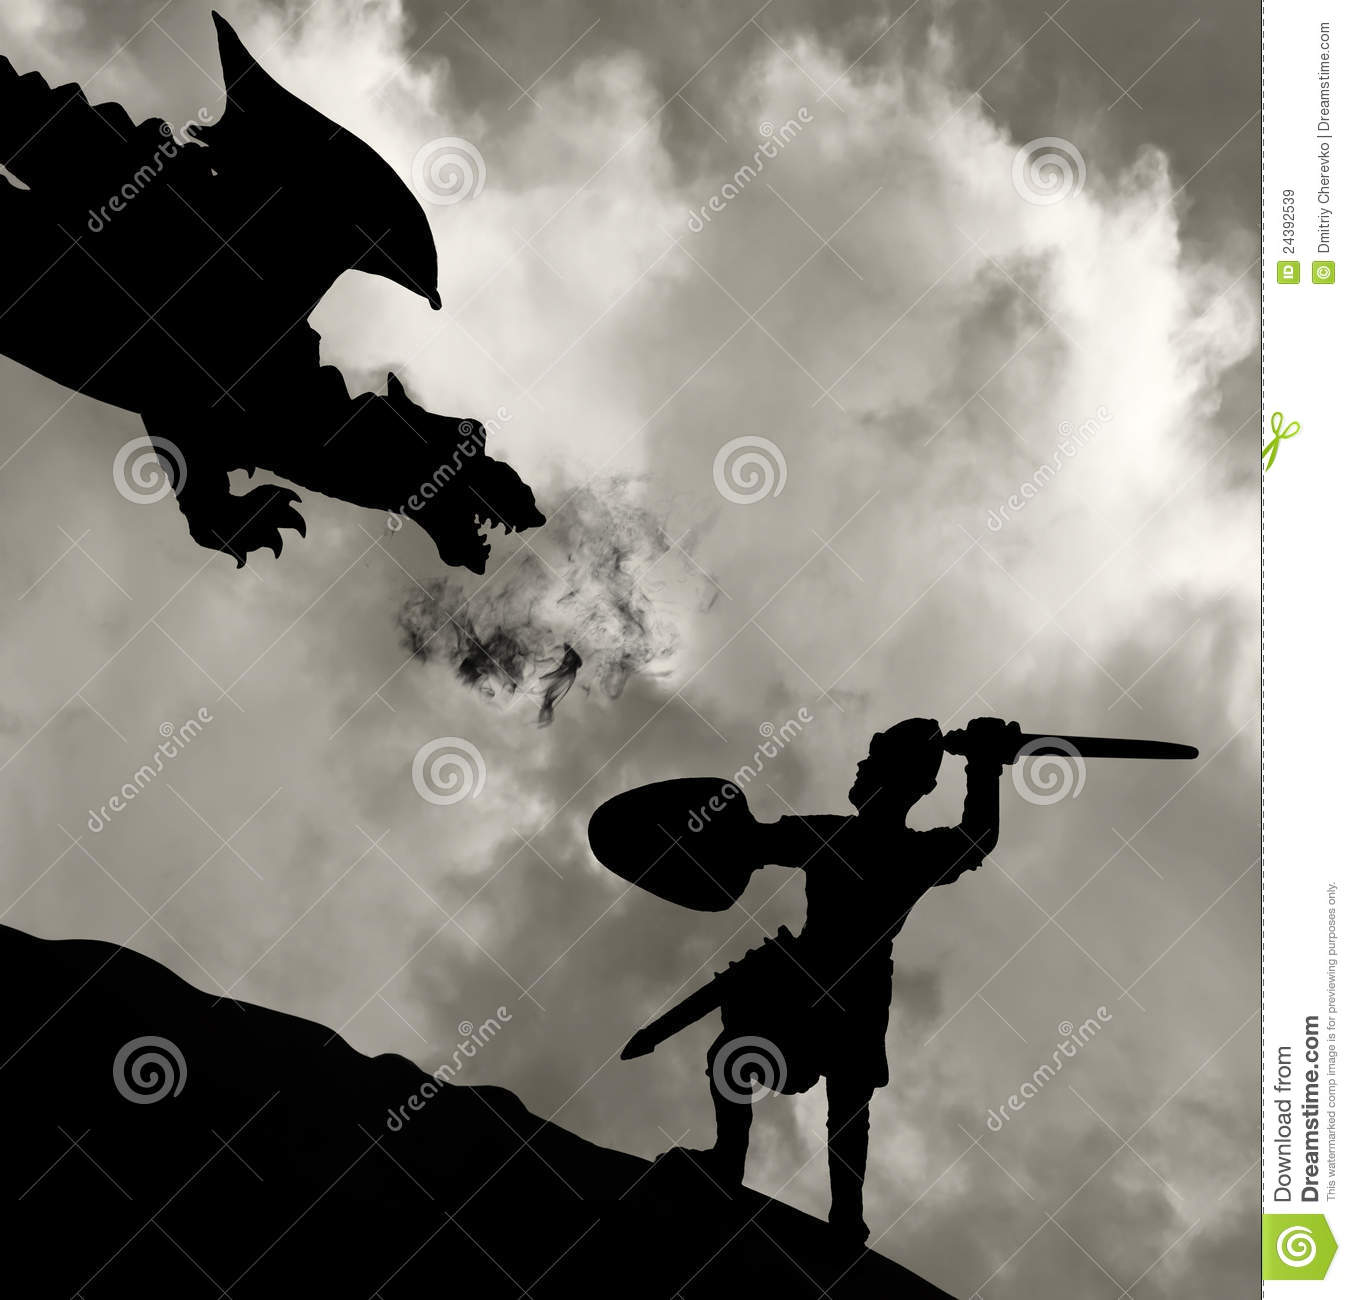 medieval knight fighting the dragon royalty free stock